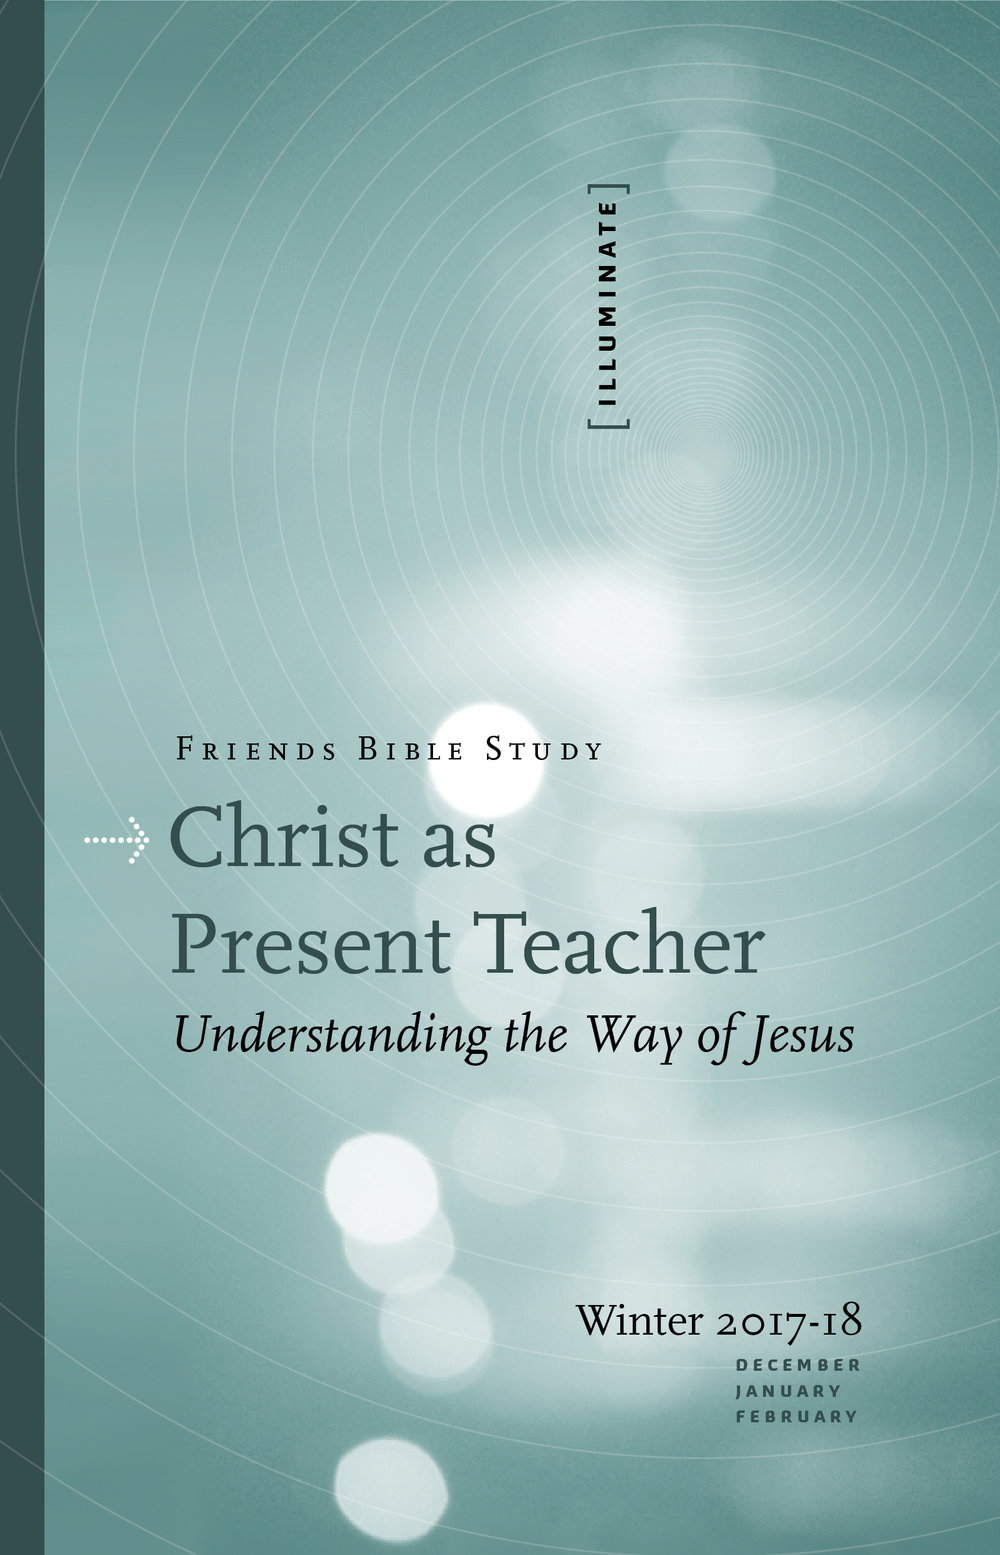 Christ as Present Teacher